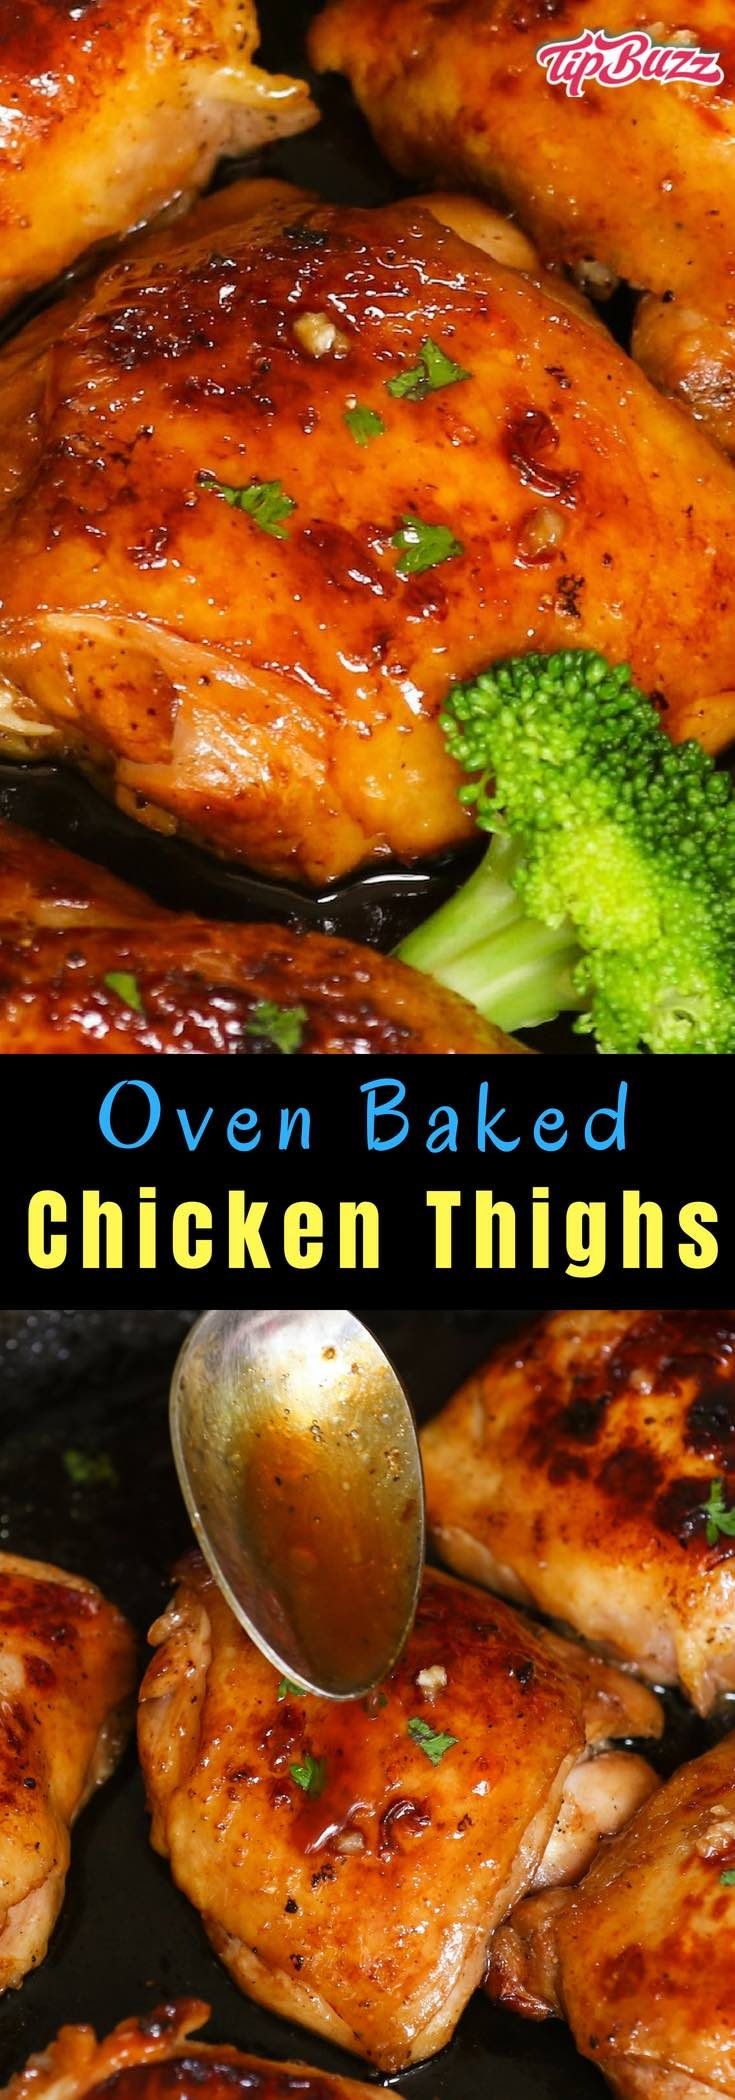 Oven Baked Chicken Thighs {Easy & Crispy!} - TipBuzz